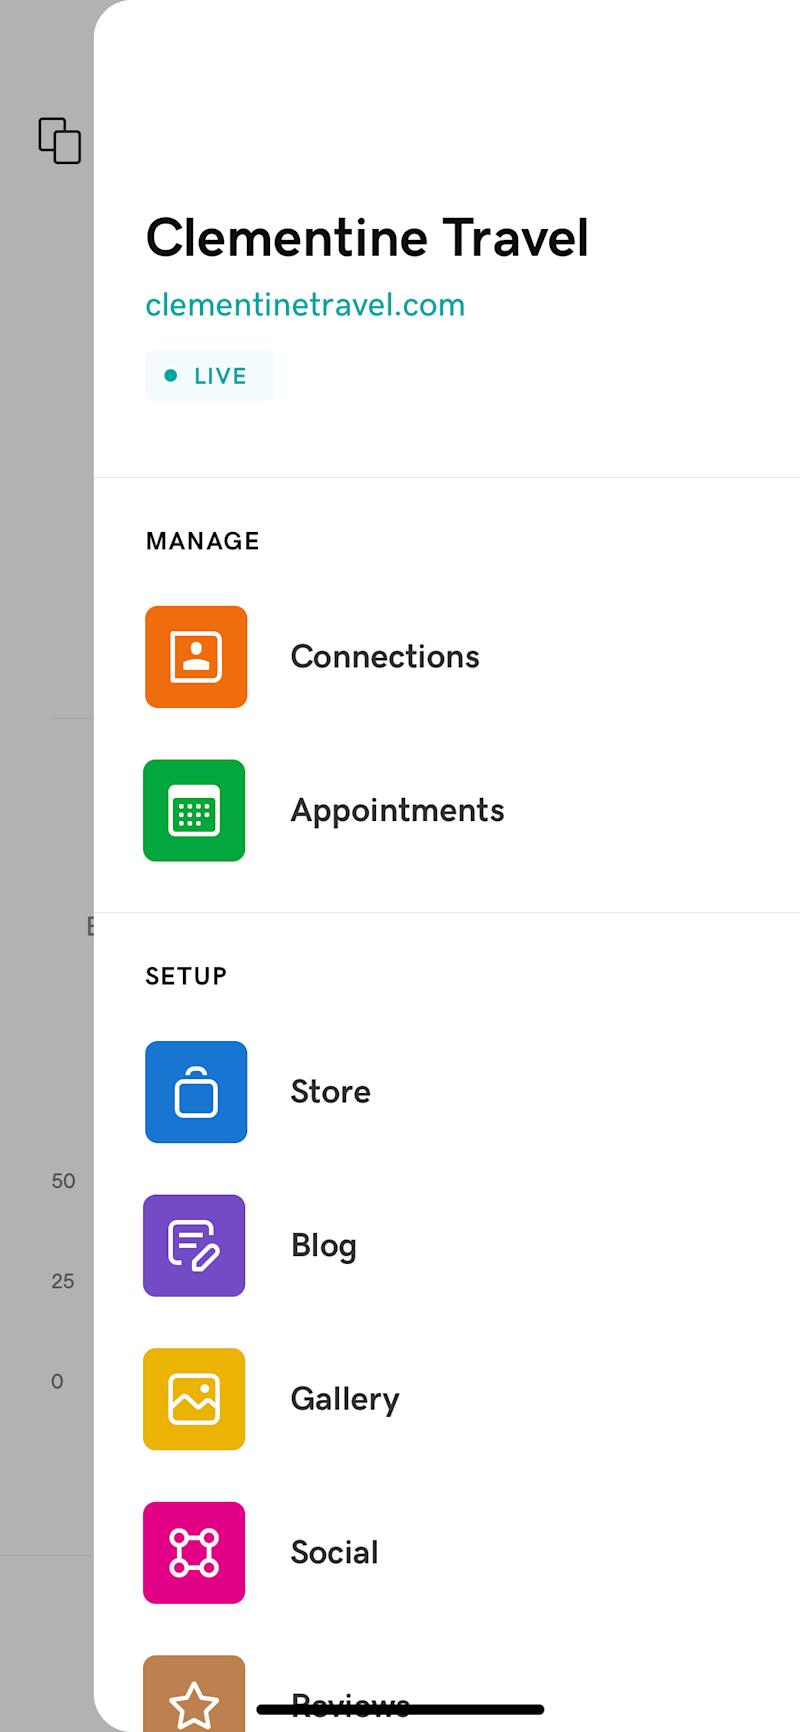 GoDaddy Websites + Marketing users can easily manage customers, appointments, email marketing, and shops in one dashboard.